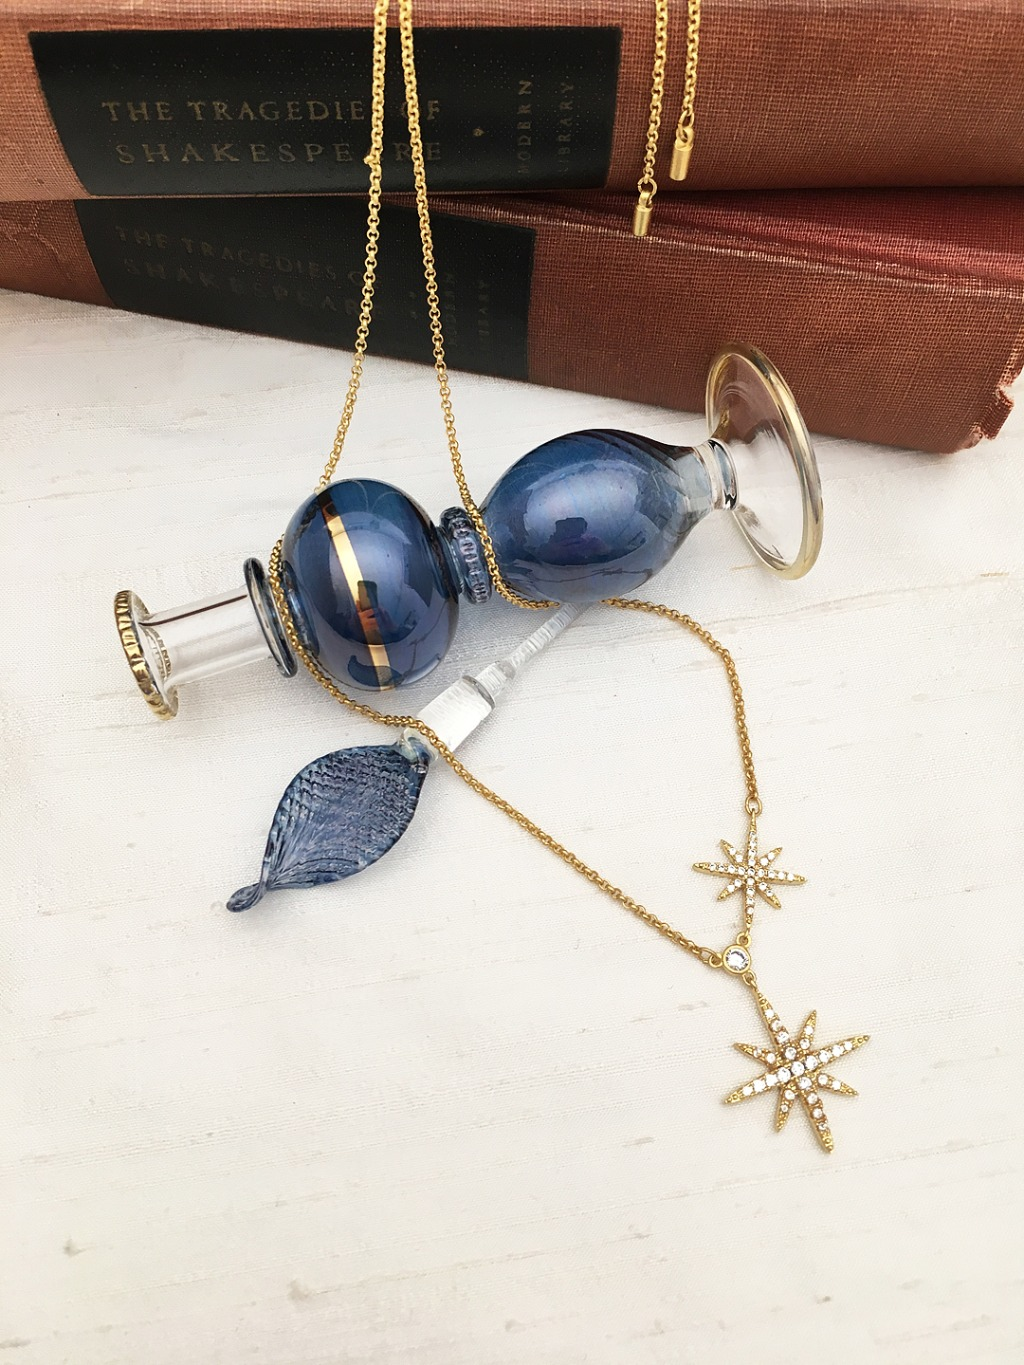 Who doesn't love Celestial themed gifts? Double North Star pendant designed by Be-Je designs, hand-made in Florida. A fabulous gift